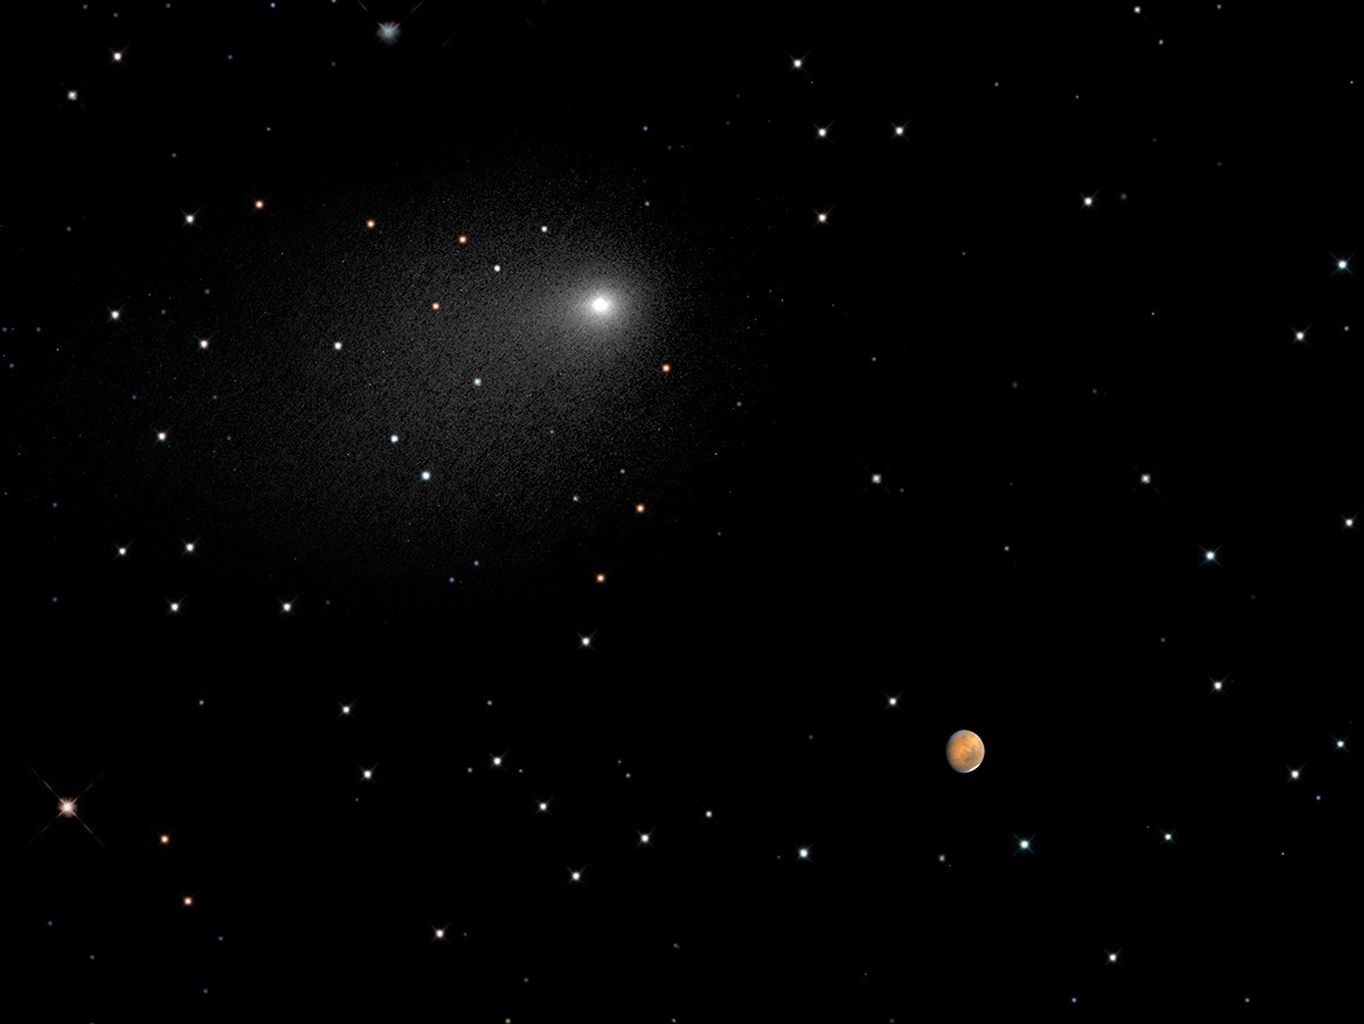 space images | close encounters: comet siding spring seen next to